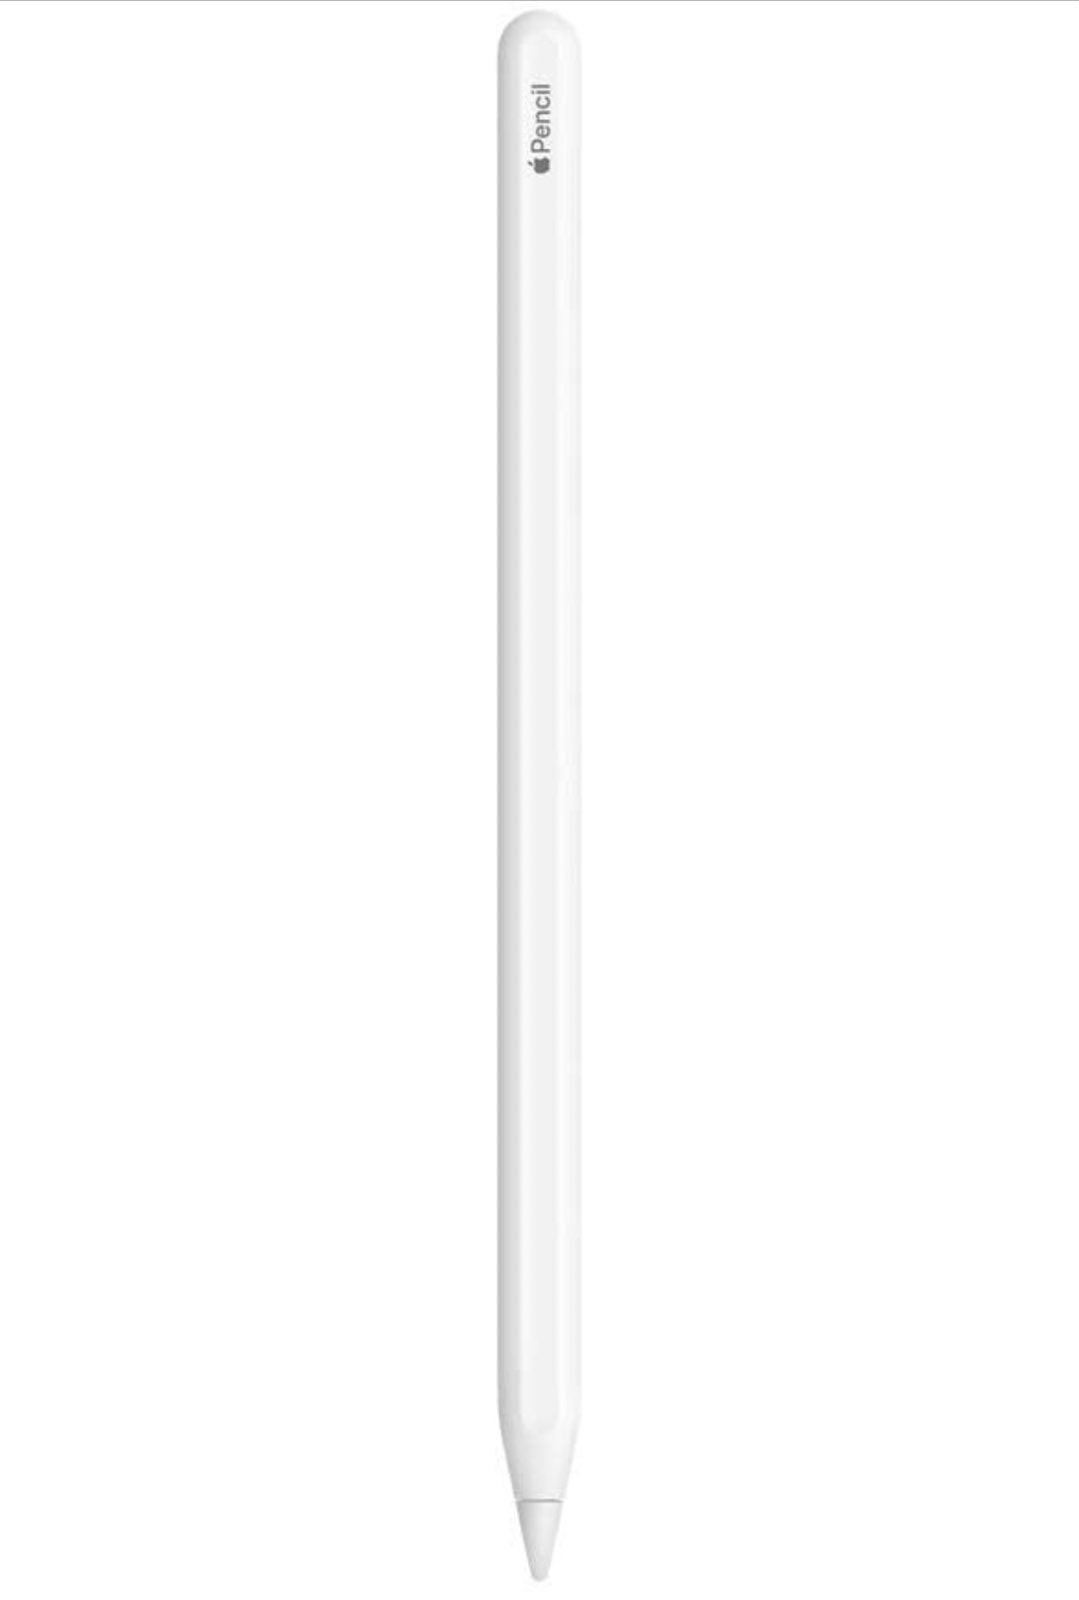 New! Apple pencil (2nd generation)